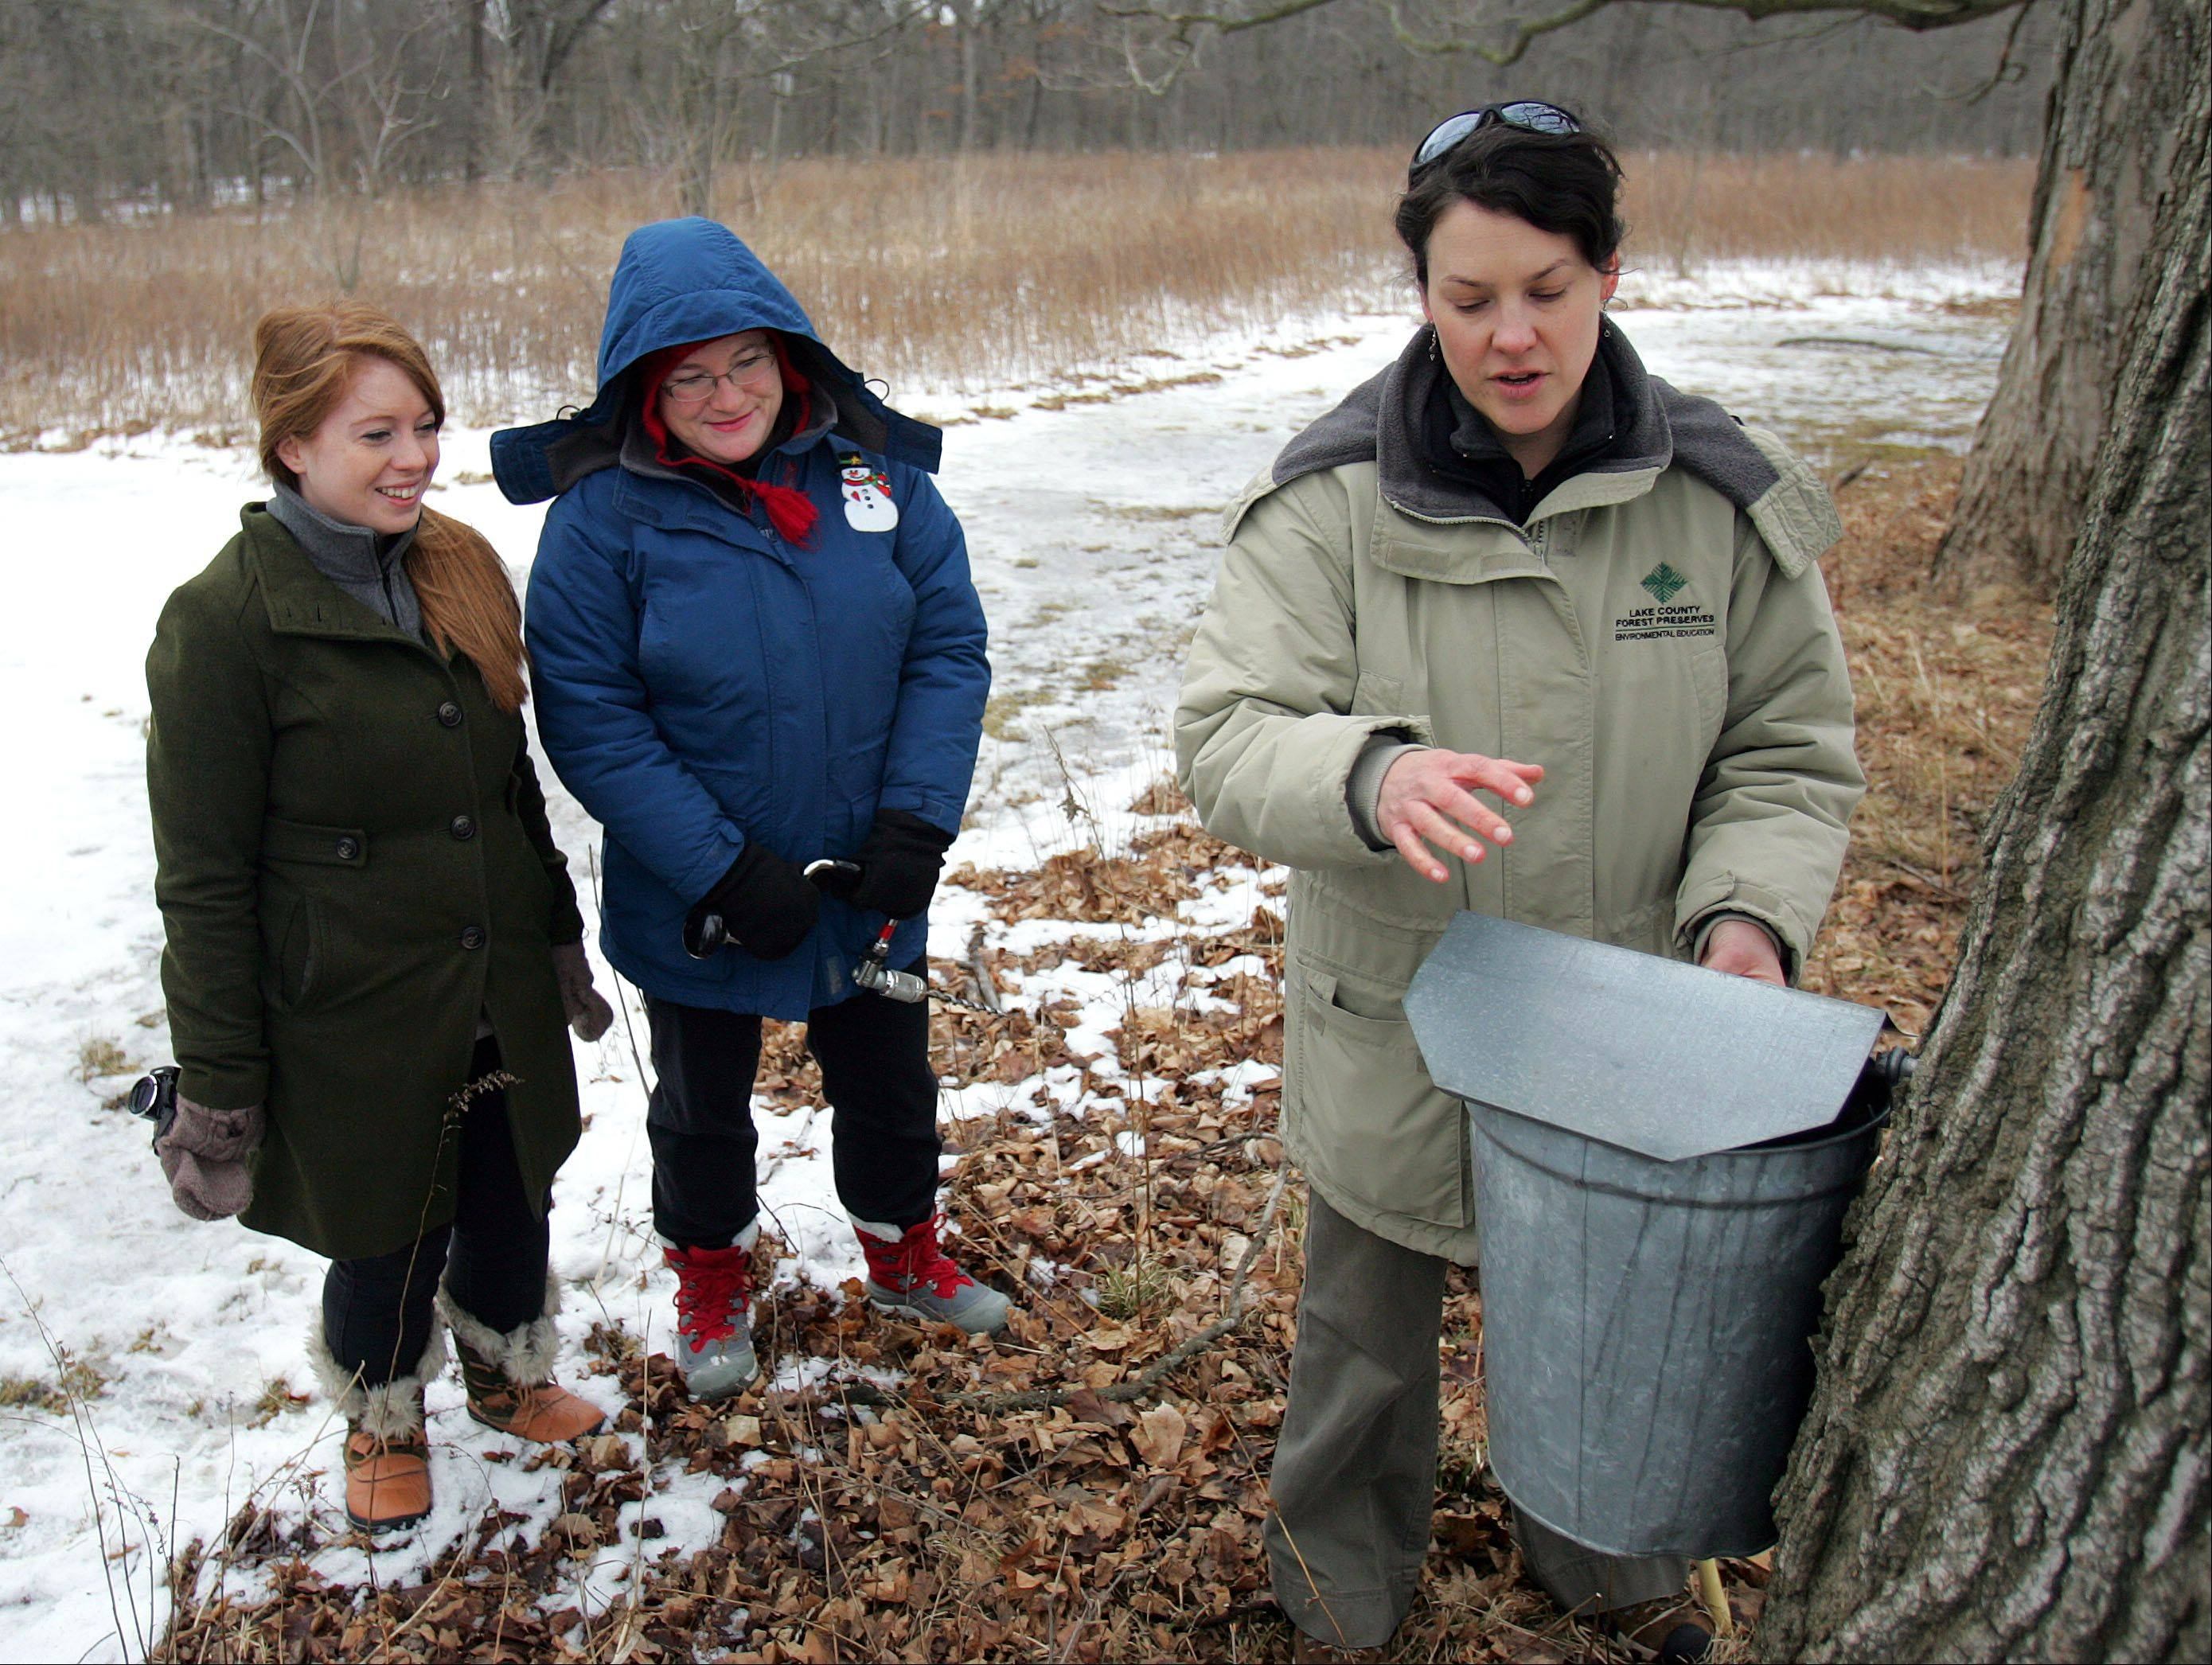 Lake County Forest Preserve Environmental Educator Jen Berlinghof, right, shows fellow employees Rachel Kosmal and Jenny Sazama how to tap sugar maple trees at Ryerson Conservation Area near Riverwoods.